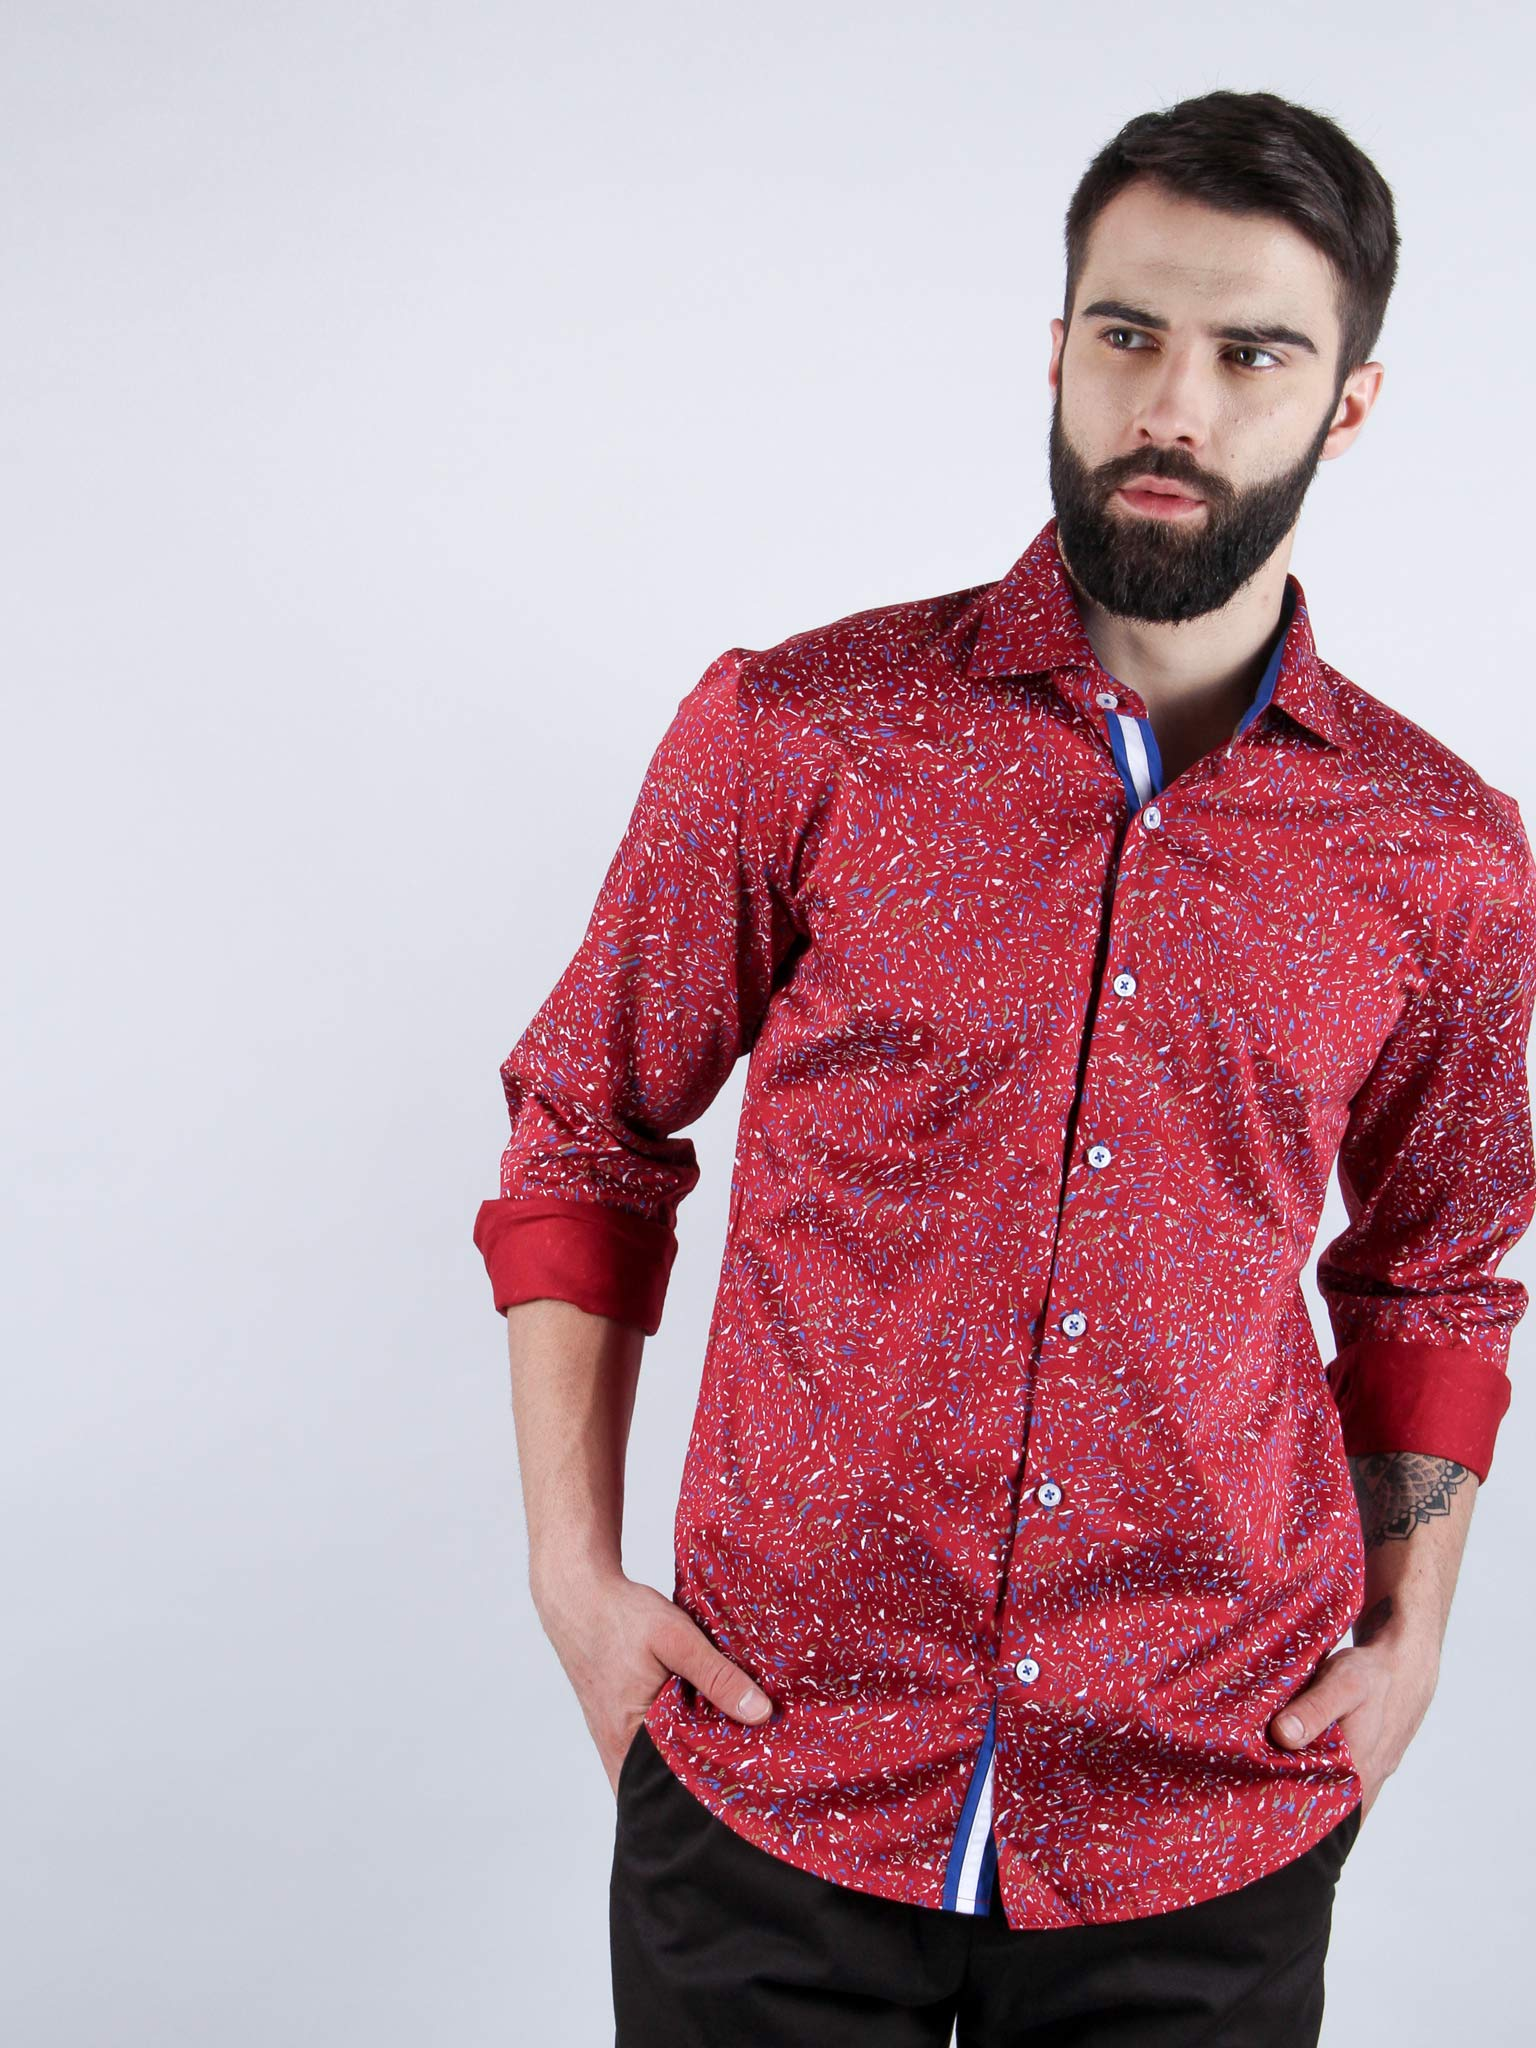 mixed salsa shirt model image